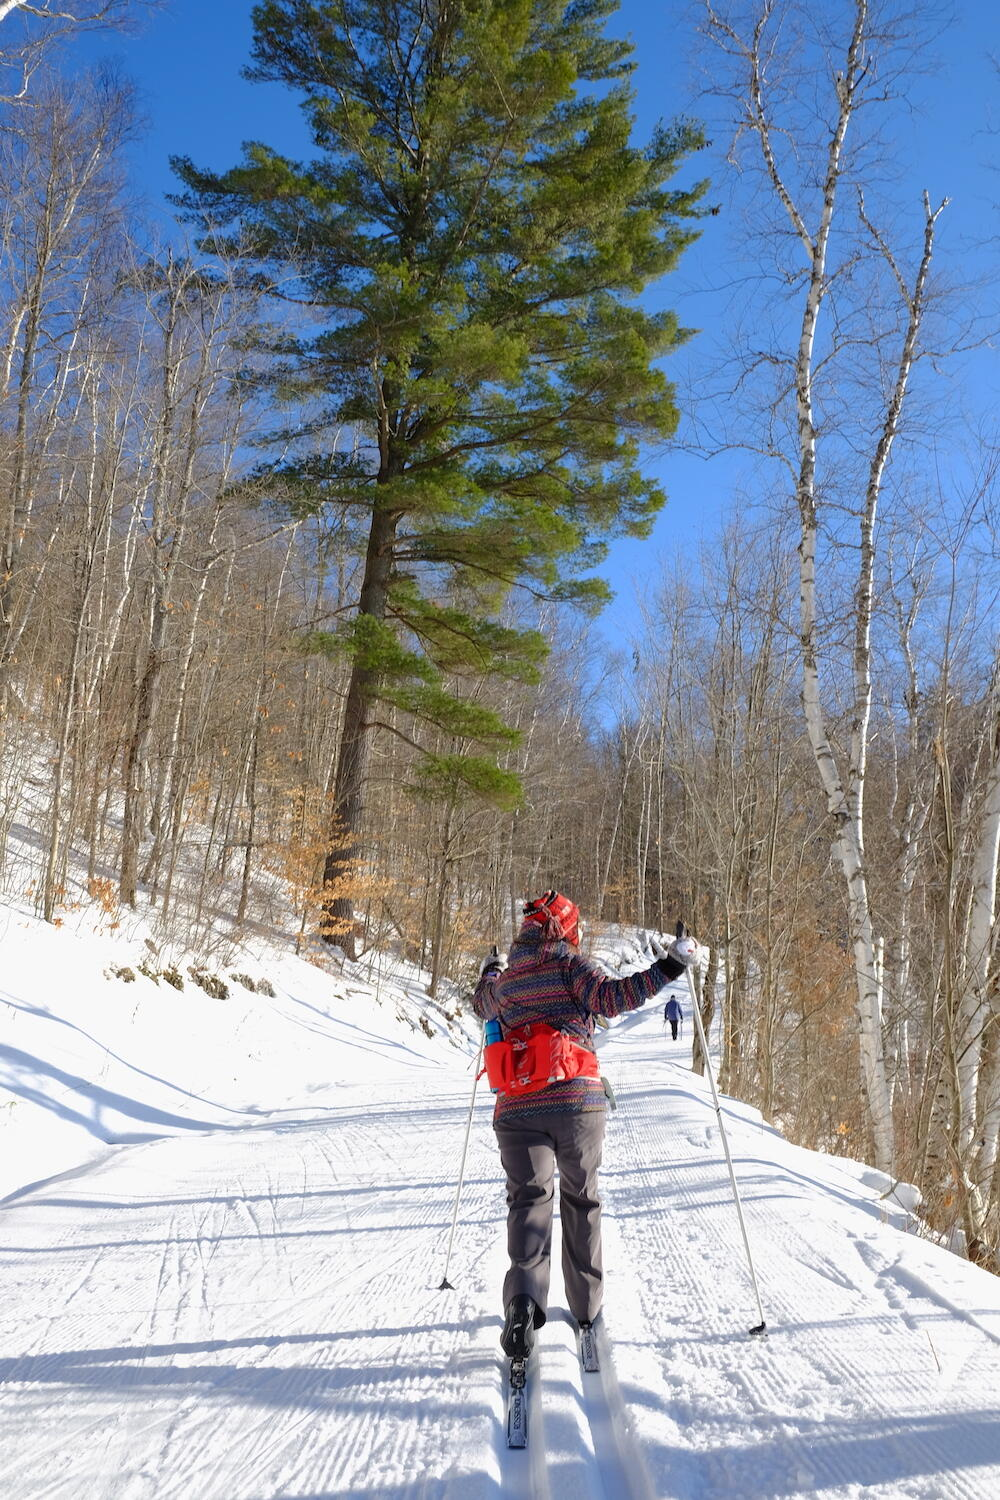 Woman cross country skiing on groomed trail.